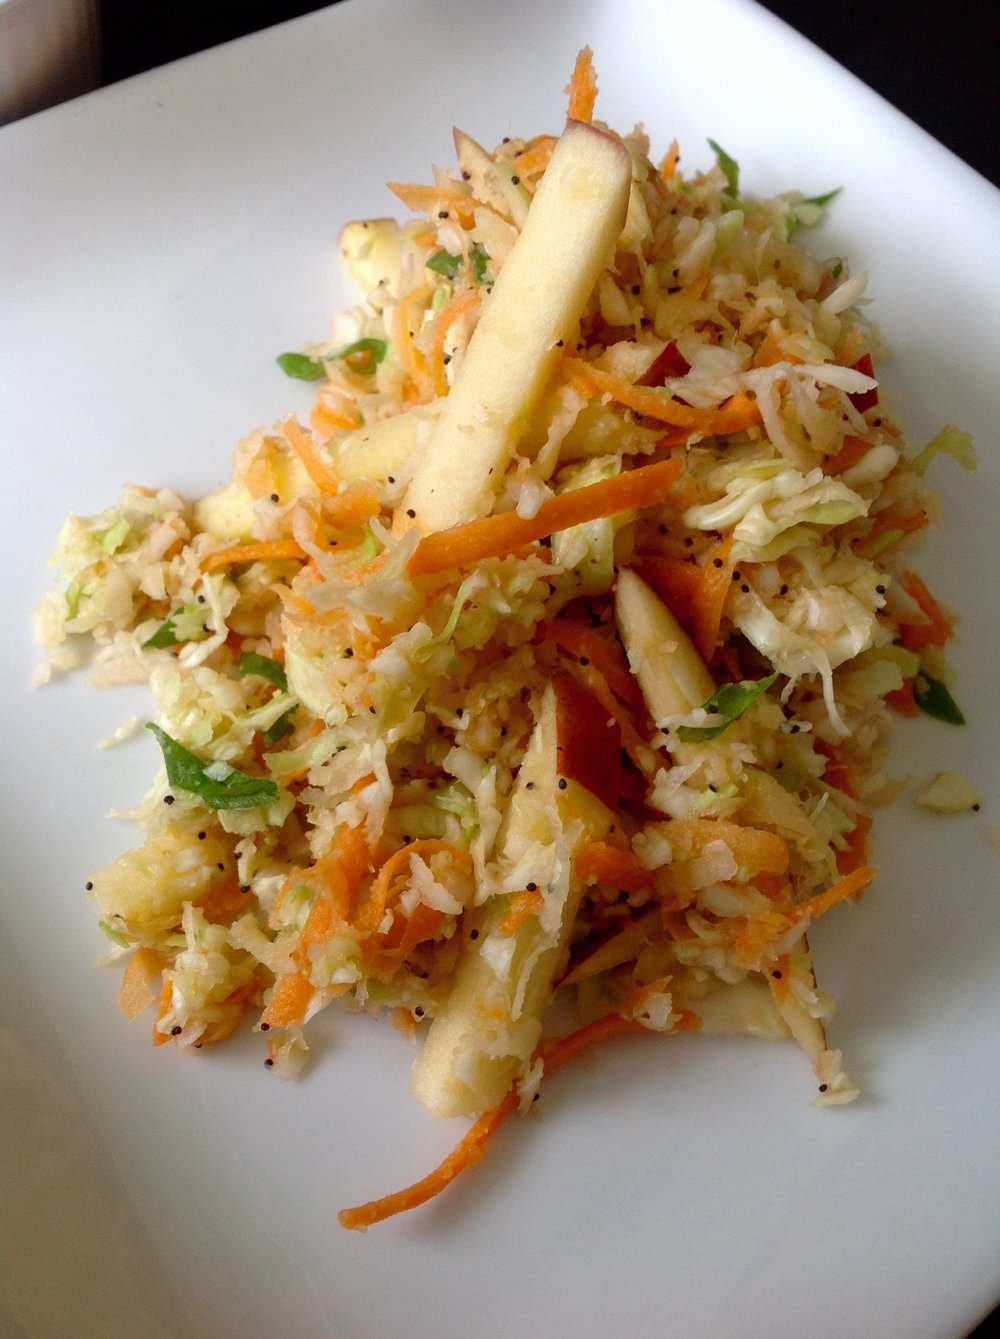 Apple Cabbage Slaw with Poppyseed Dressing